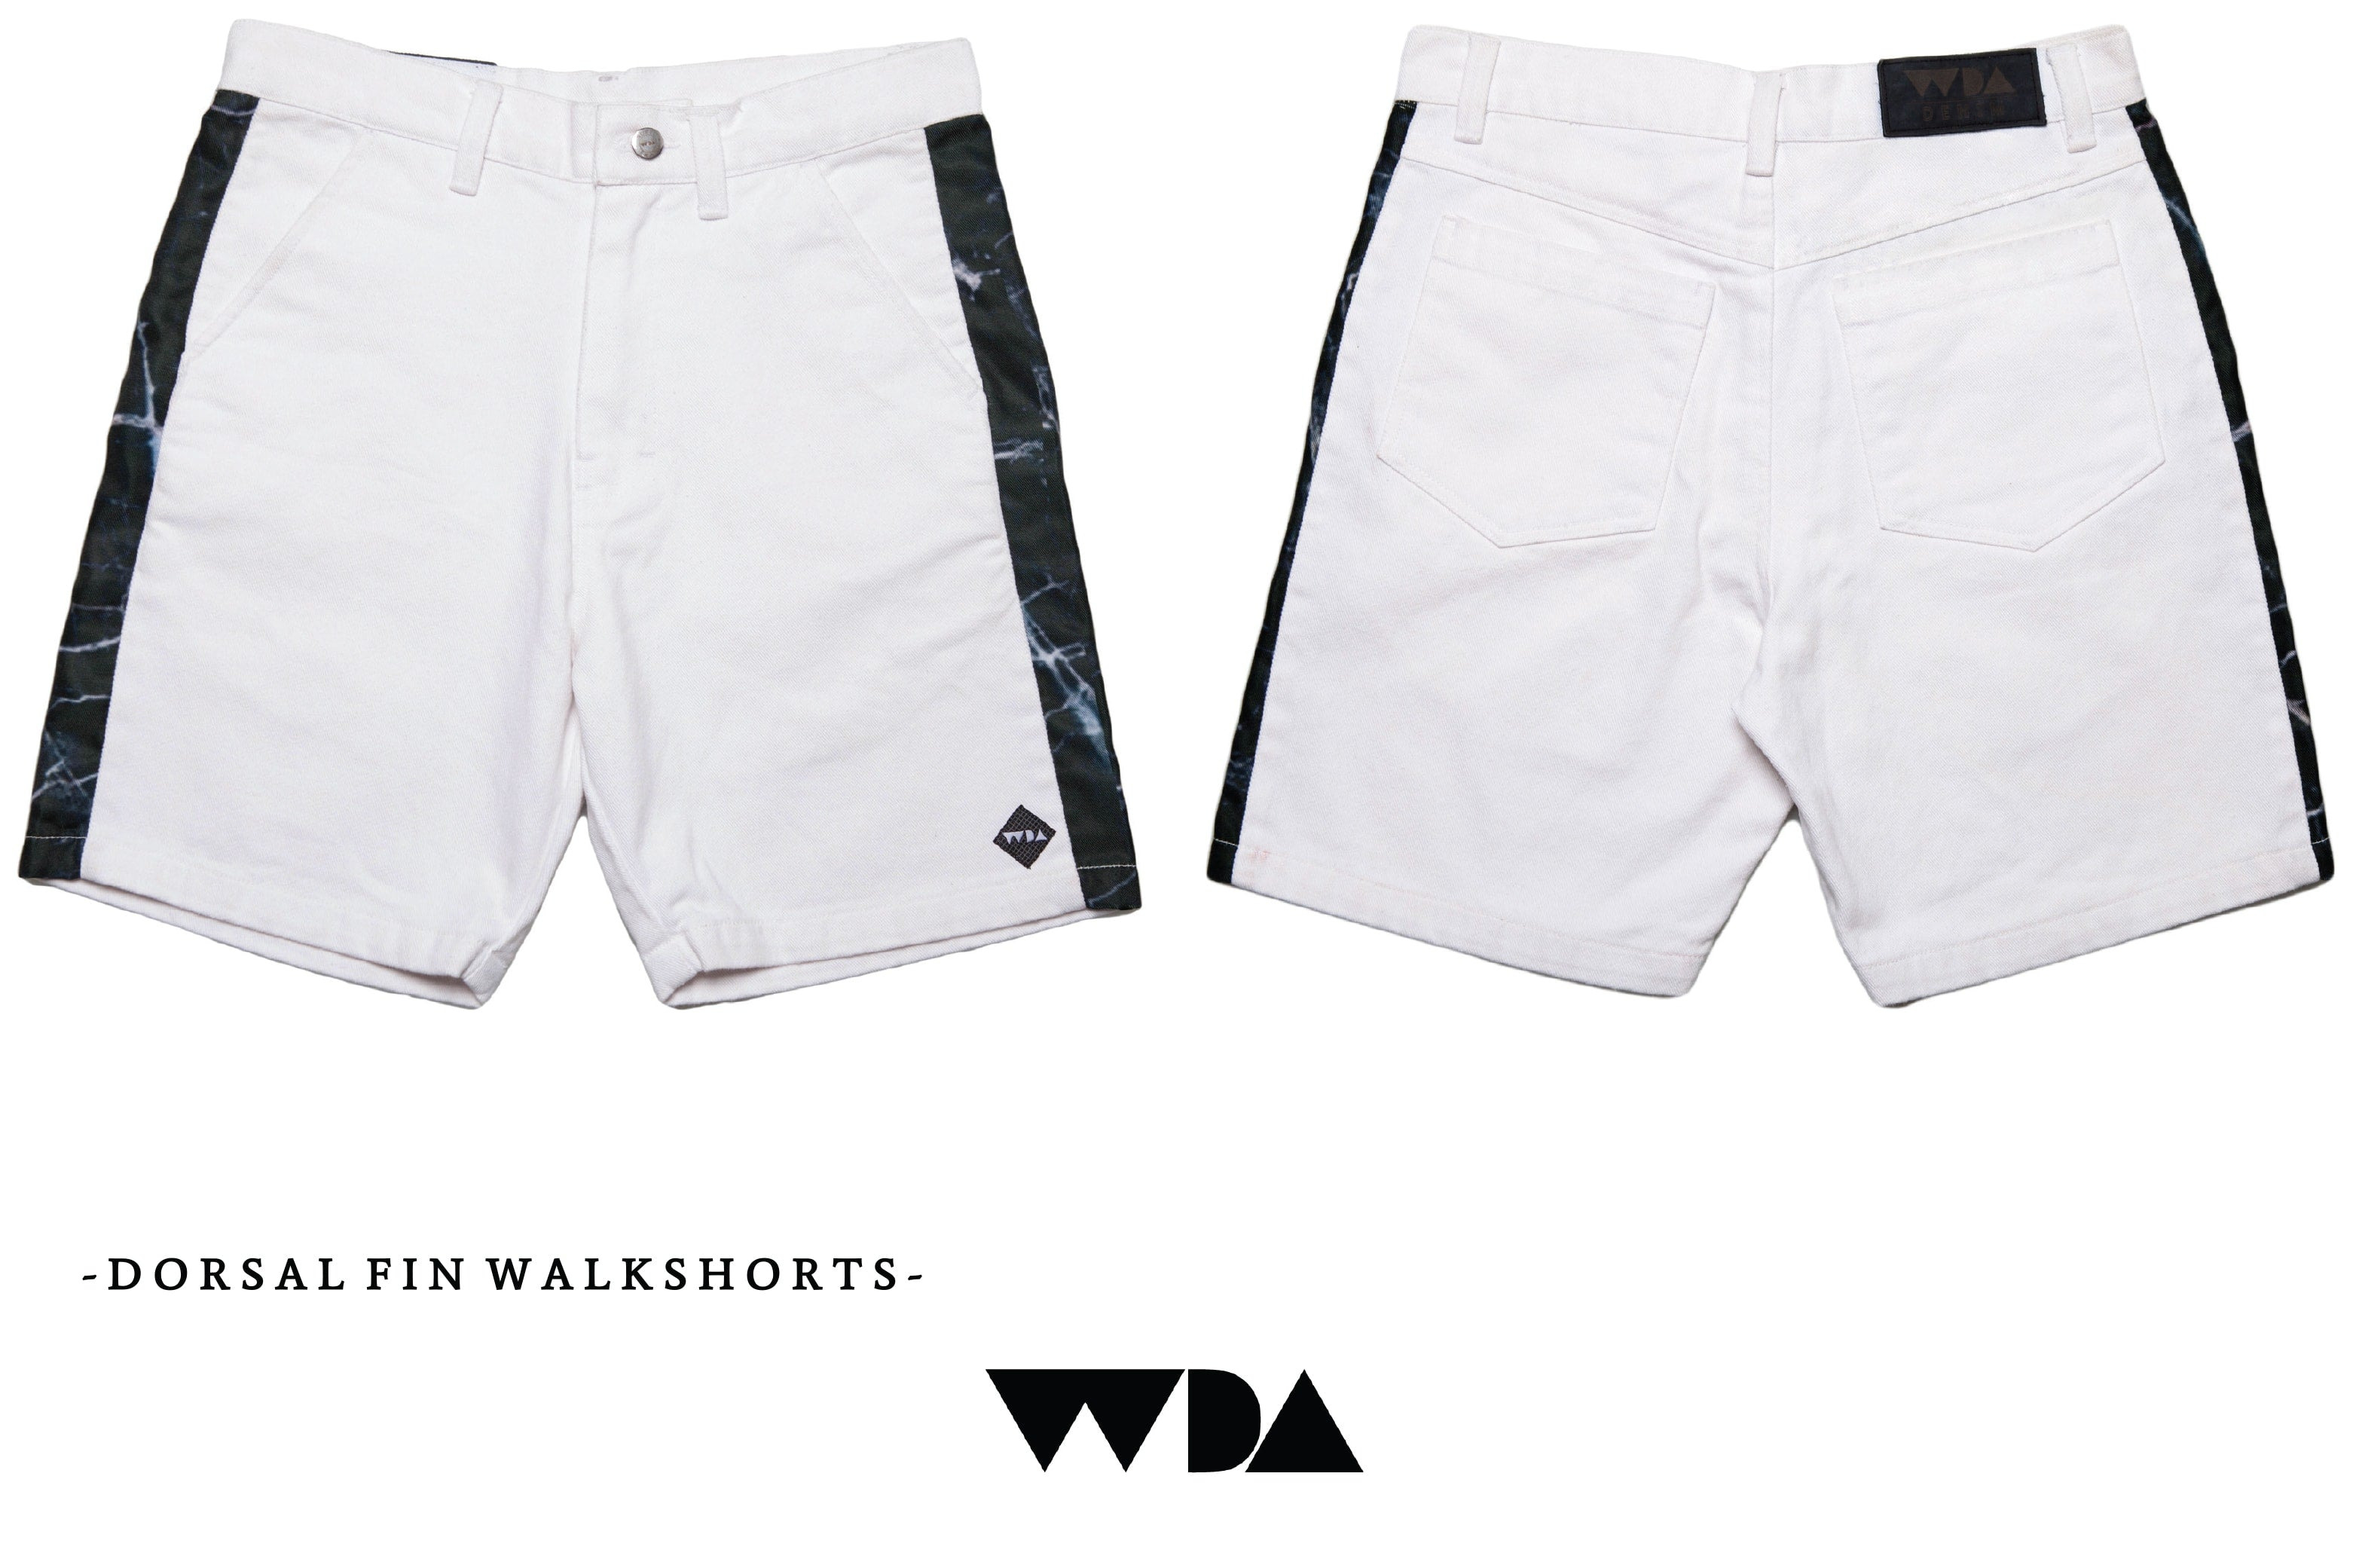 WDA, WE DREAM ALONE, CLOTHING, APPAREL, MENS, DORSAL FIN, DENIM SHORTS, MARBLE, BLACK, WHITE